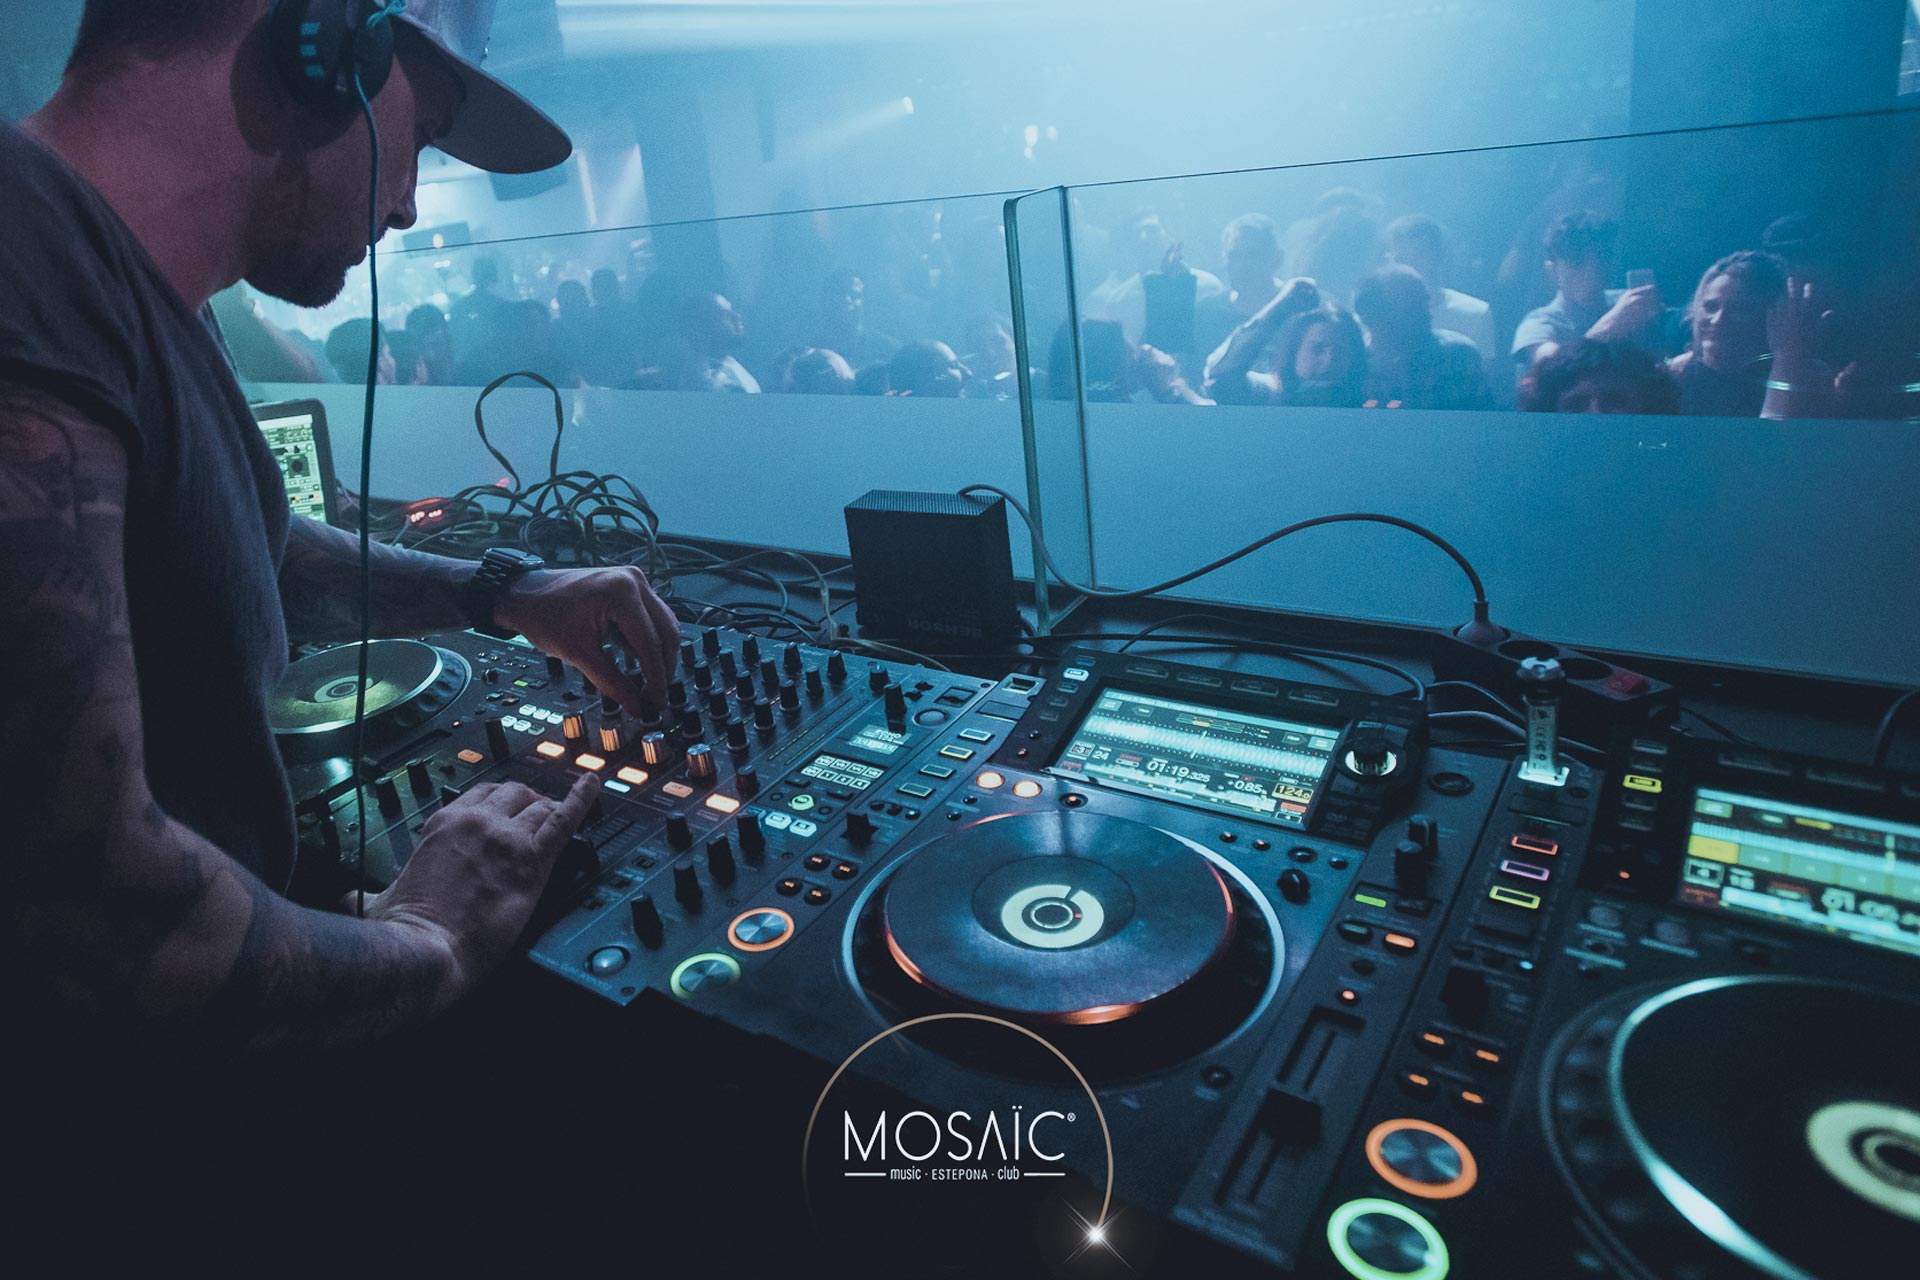 Chris Damon pinchando en Mosaic Music Club